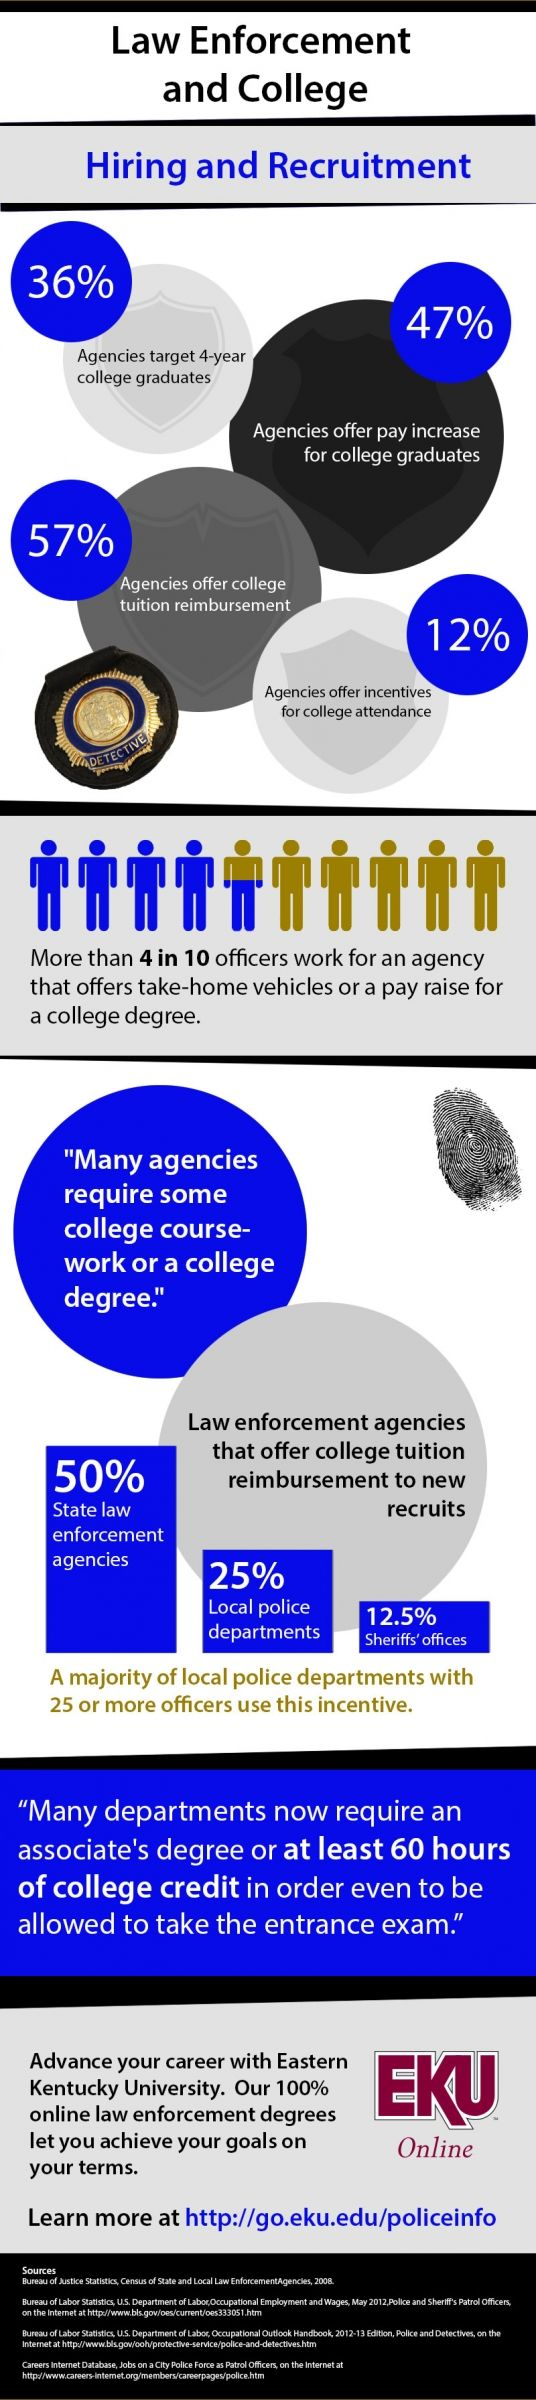 law enforcement and college hiring and recruitment infographic 36 many police departments now require an associates degree or at least 60 hours of college credit in order even to be allowed to take the entrance exam